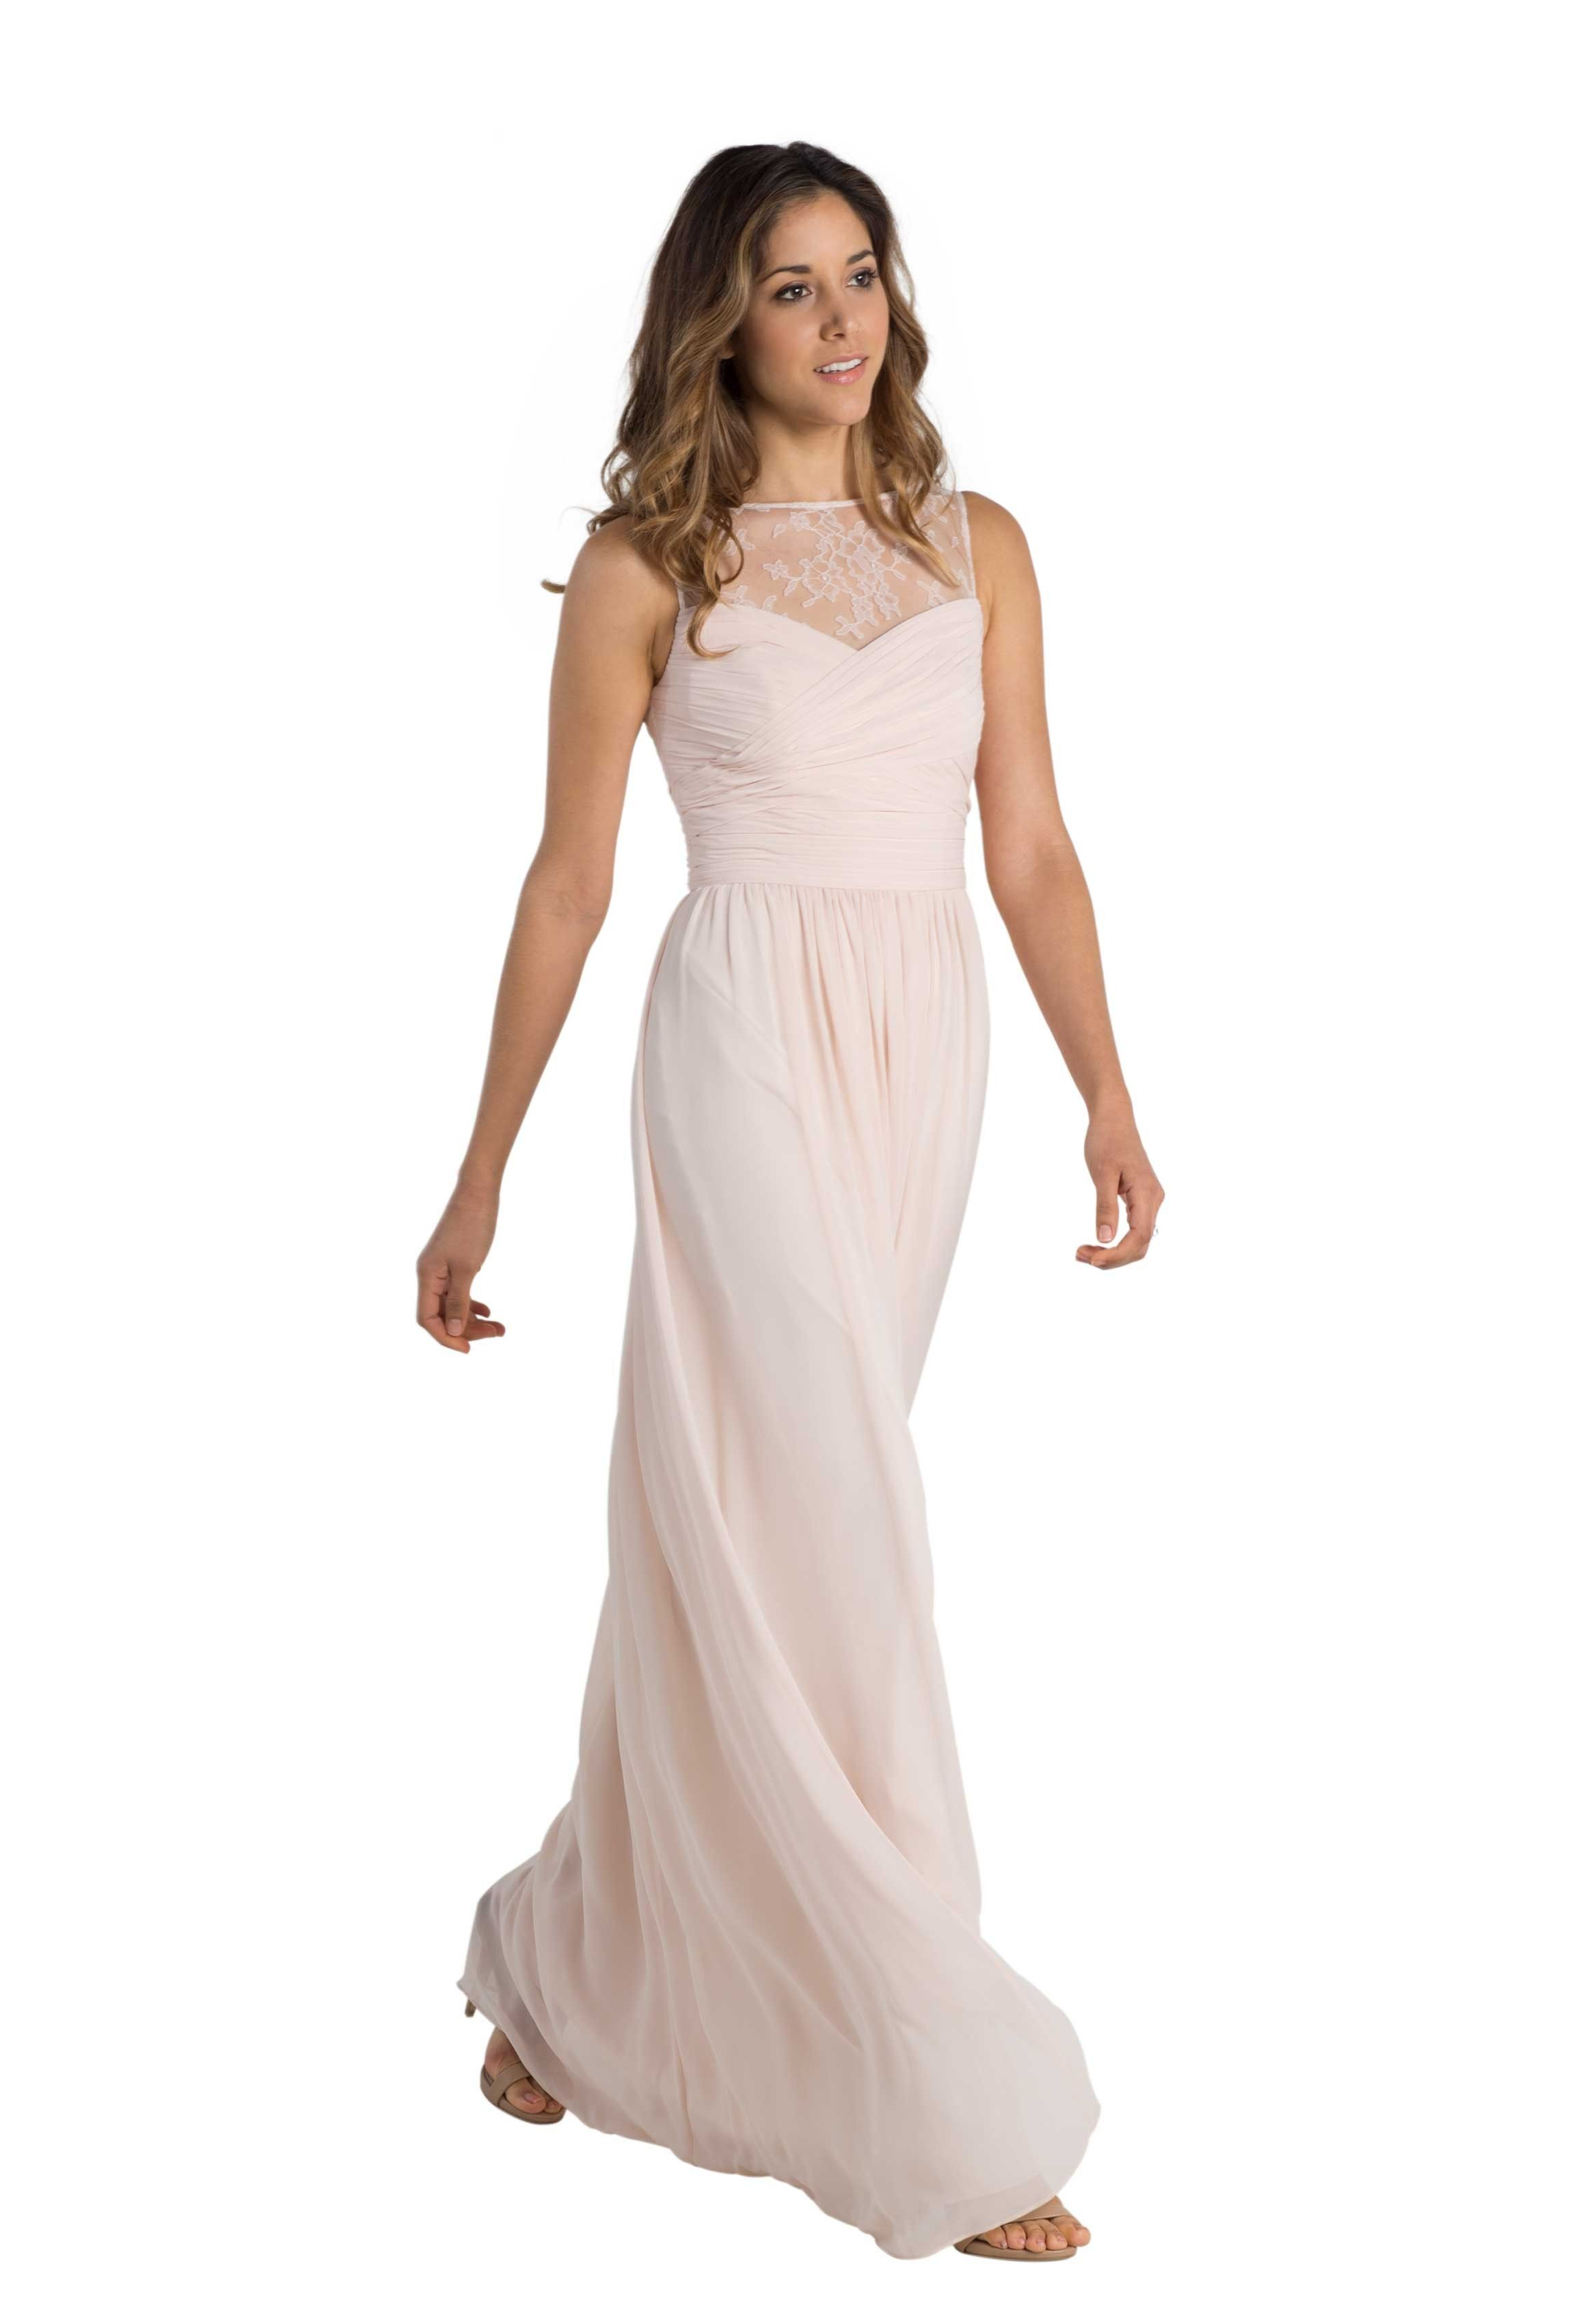 Monique lhuillier riley to be lace and blush a floor length allusion lace chiffon bridesmaid dress with cutout back in six colors ombrellifo Gallery